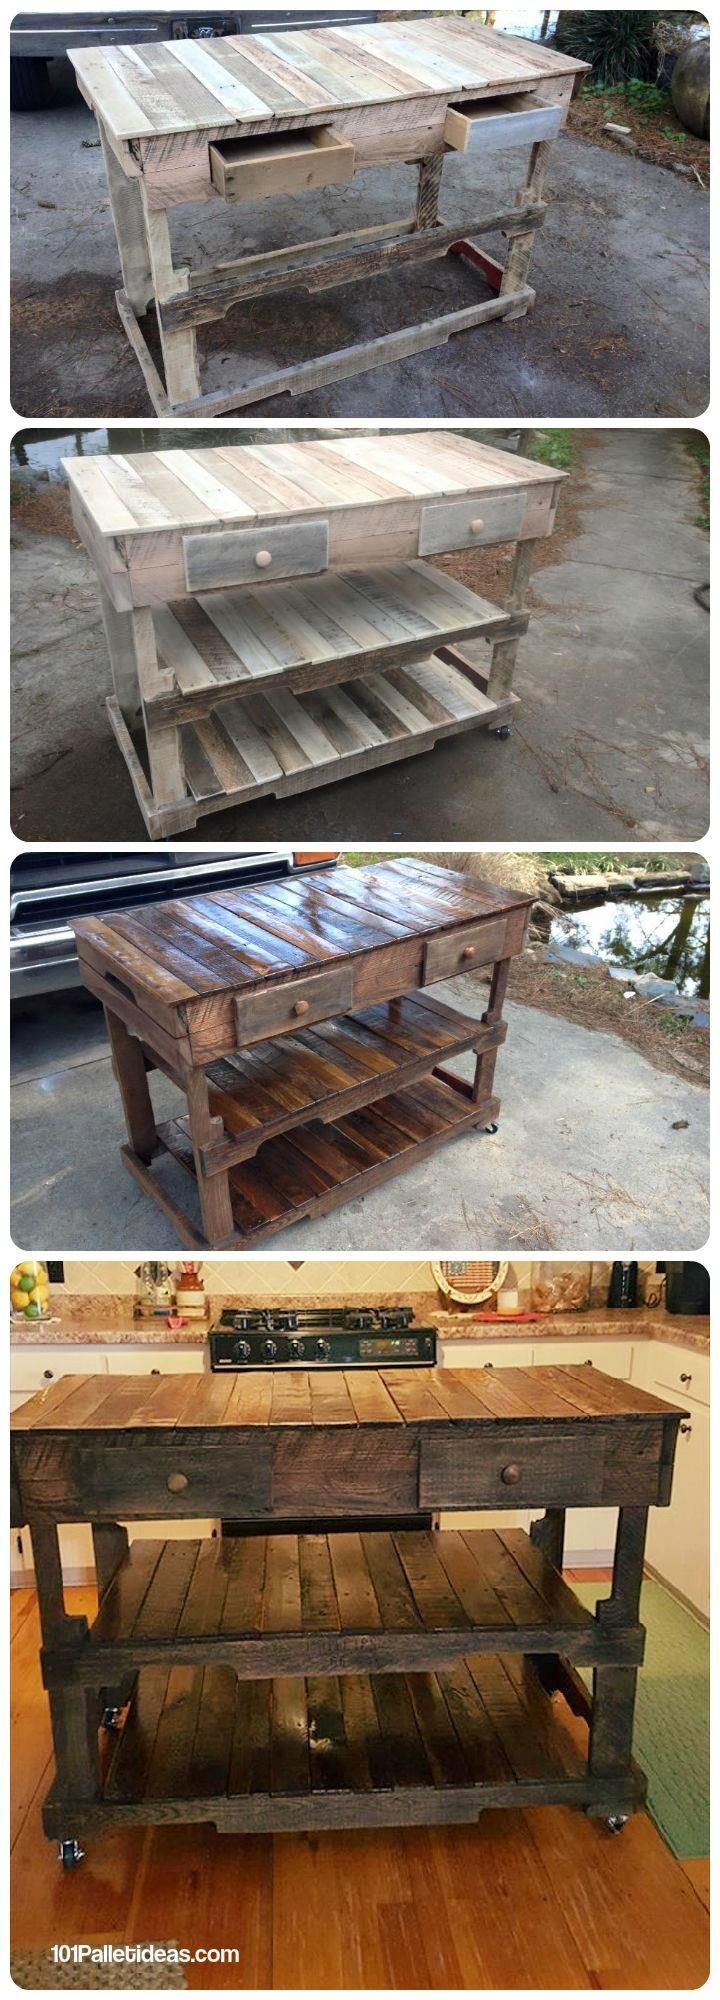 538 best images about Wooden Pallet furniture on Pinterest ...